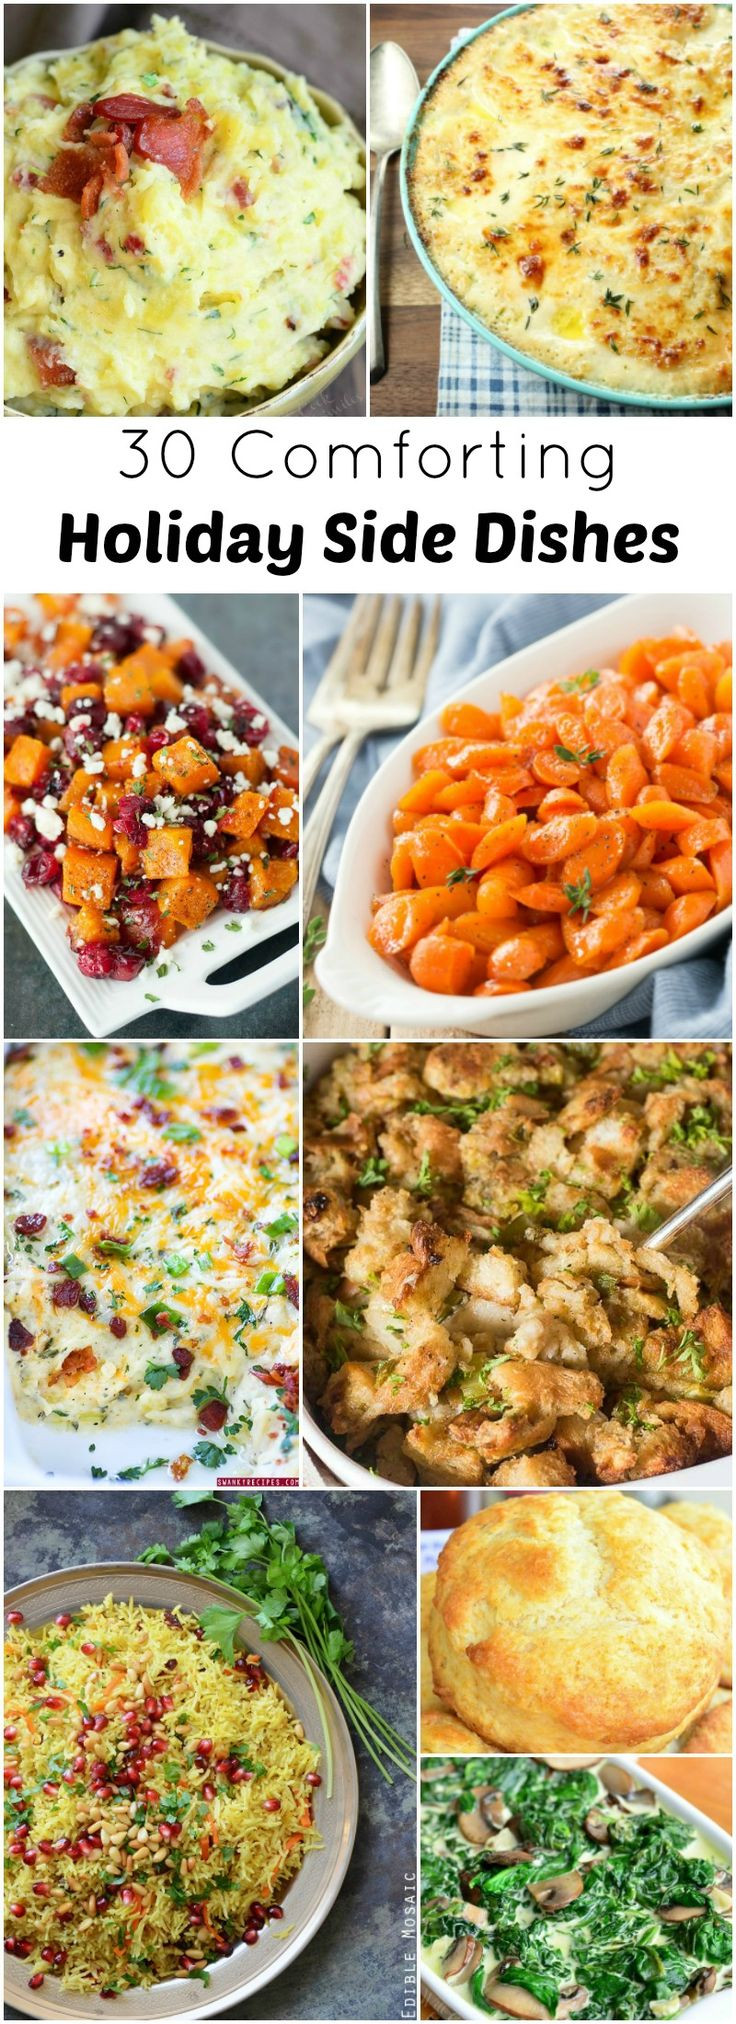 Christmas Side Dishes Recipe  Best 20 Holiday Side Dishes ideas on Pinterest